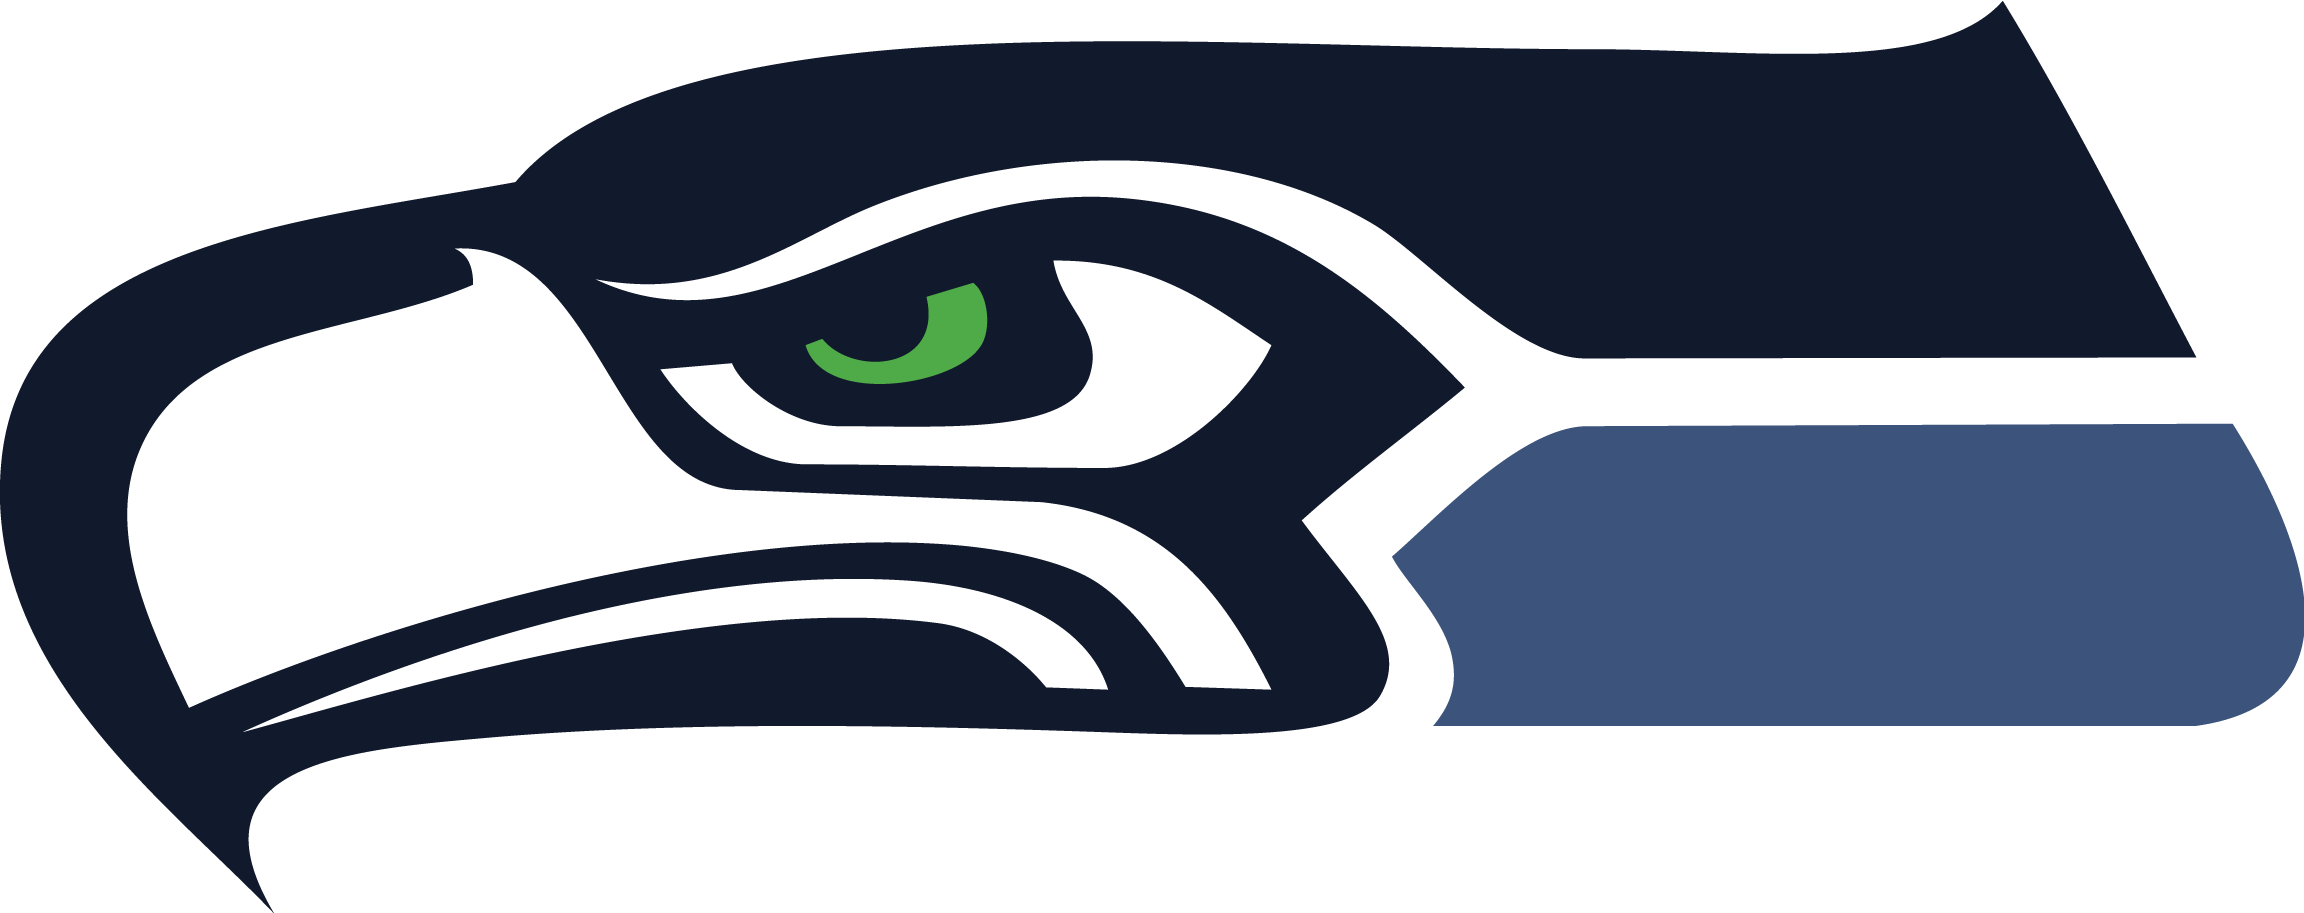 Seahawks logo png. Head window wall sticker